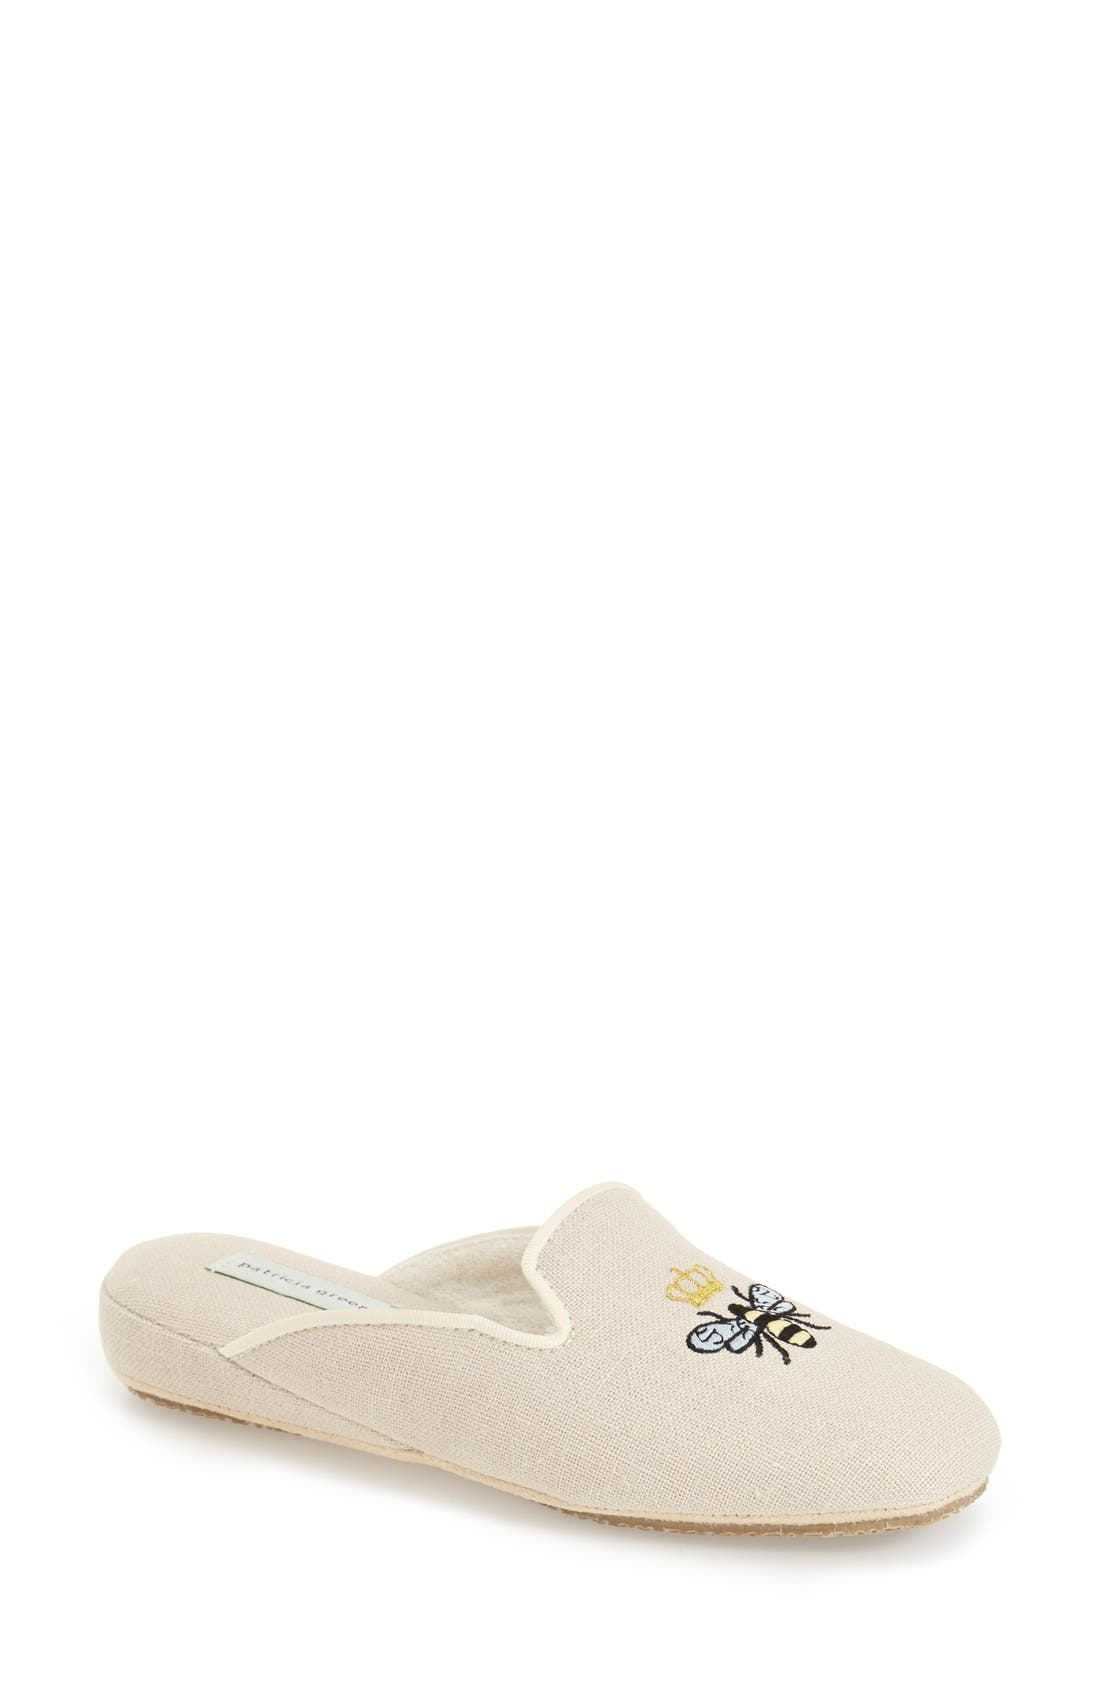 patricia green 'Queen Bee' Embroidered Slipper (Women)